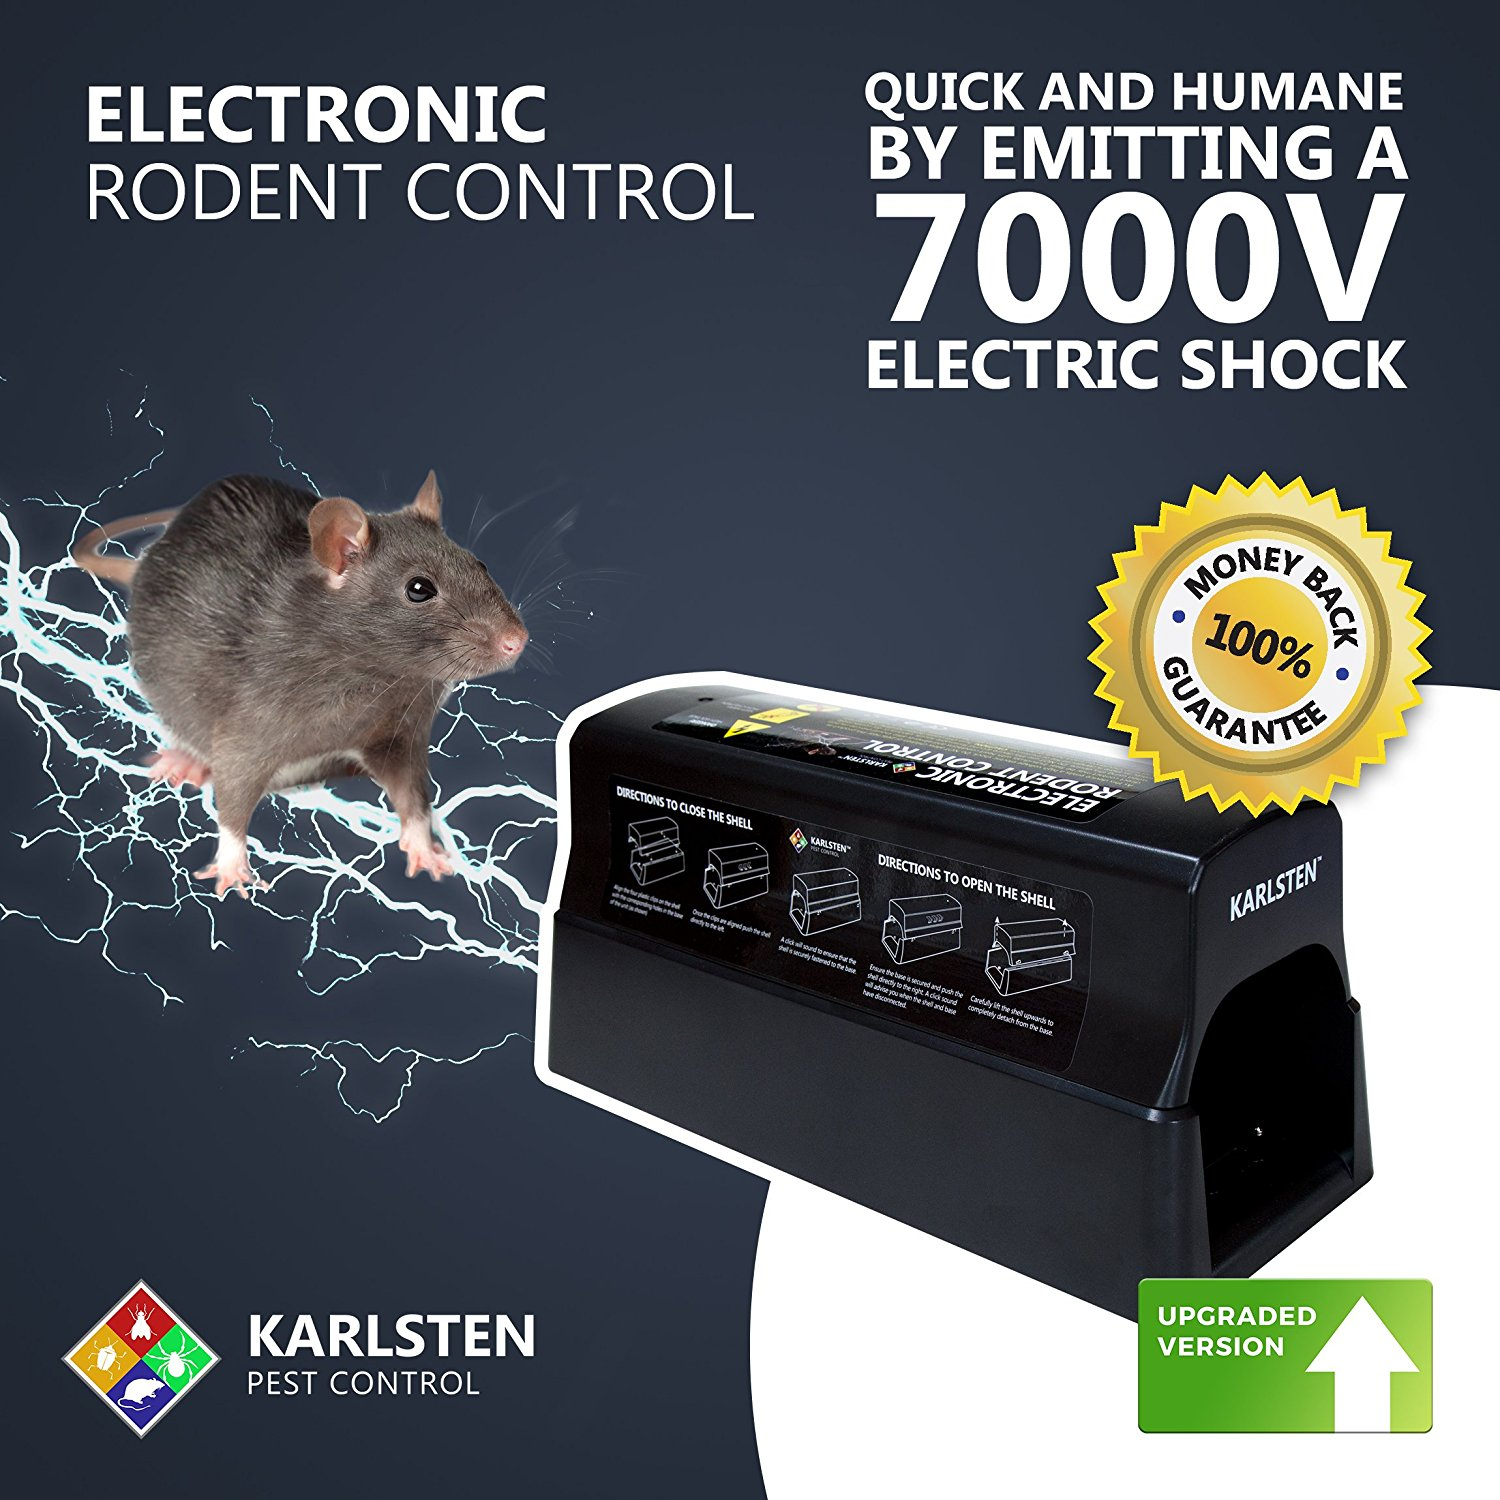 Karlsten Electronic Rodent Control Trap